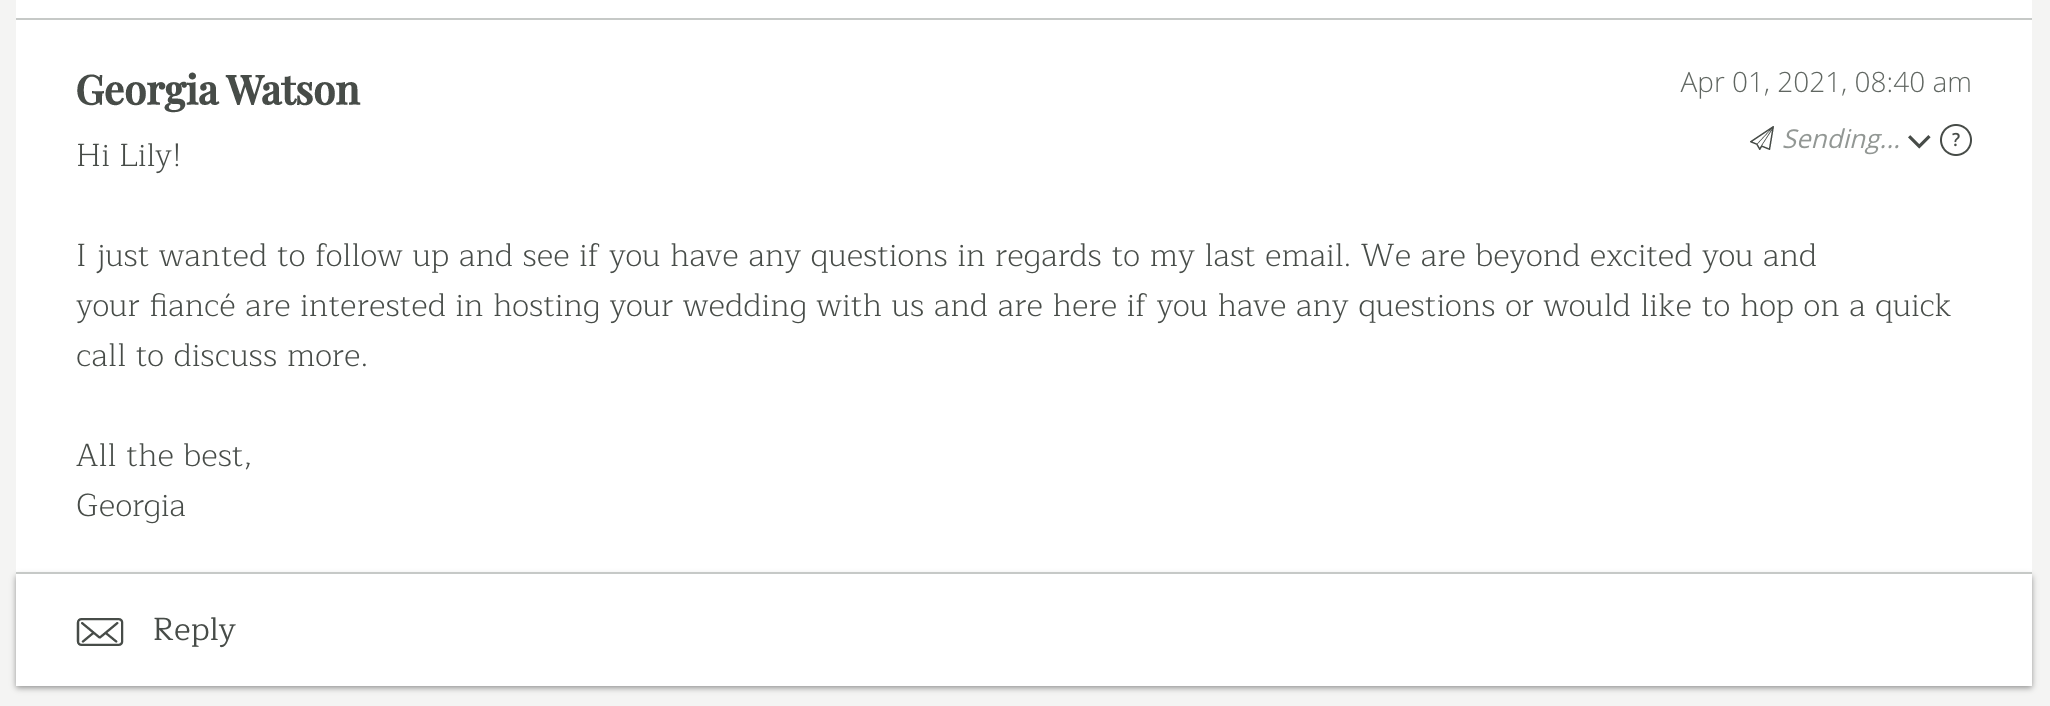 I just wanted to follow up and see if you have any questions in regards to my last email. We are beyond excited you and yourfiancé are interested in hosting your wedding with us and are here if you have any questions or would like to hop on a quick call to discuss more.